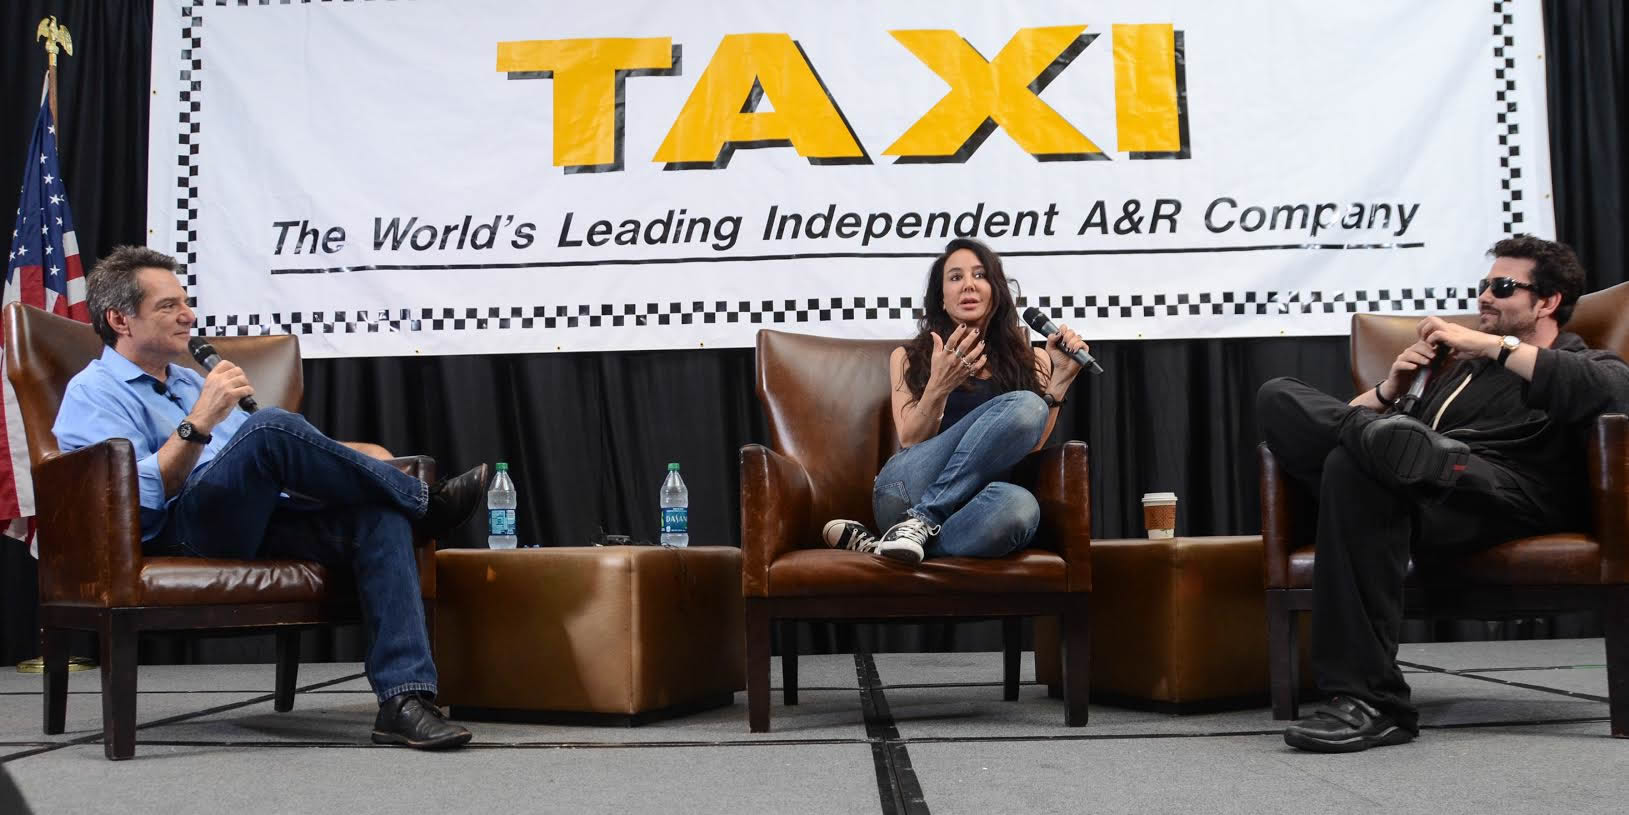 Antonina Armato (center) makes a point   during the Rock Mafia interview, while her partner Tim James (right)   looks on and smiles in agreement.